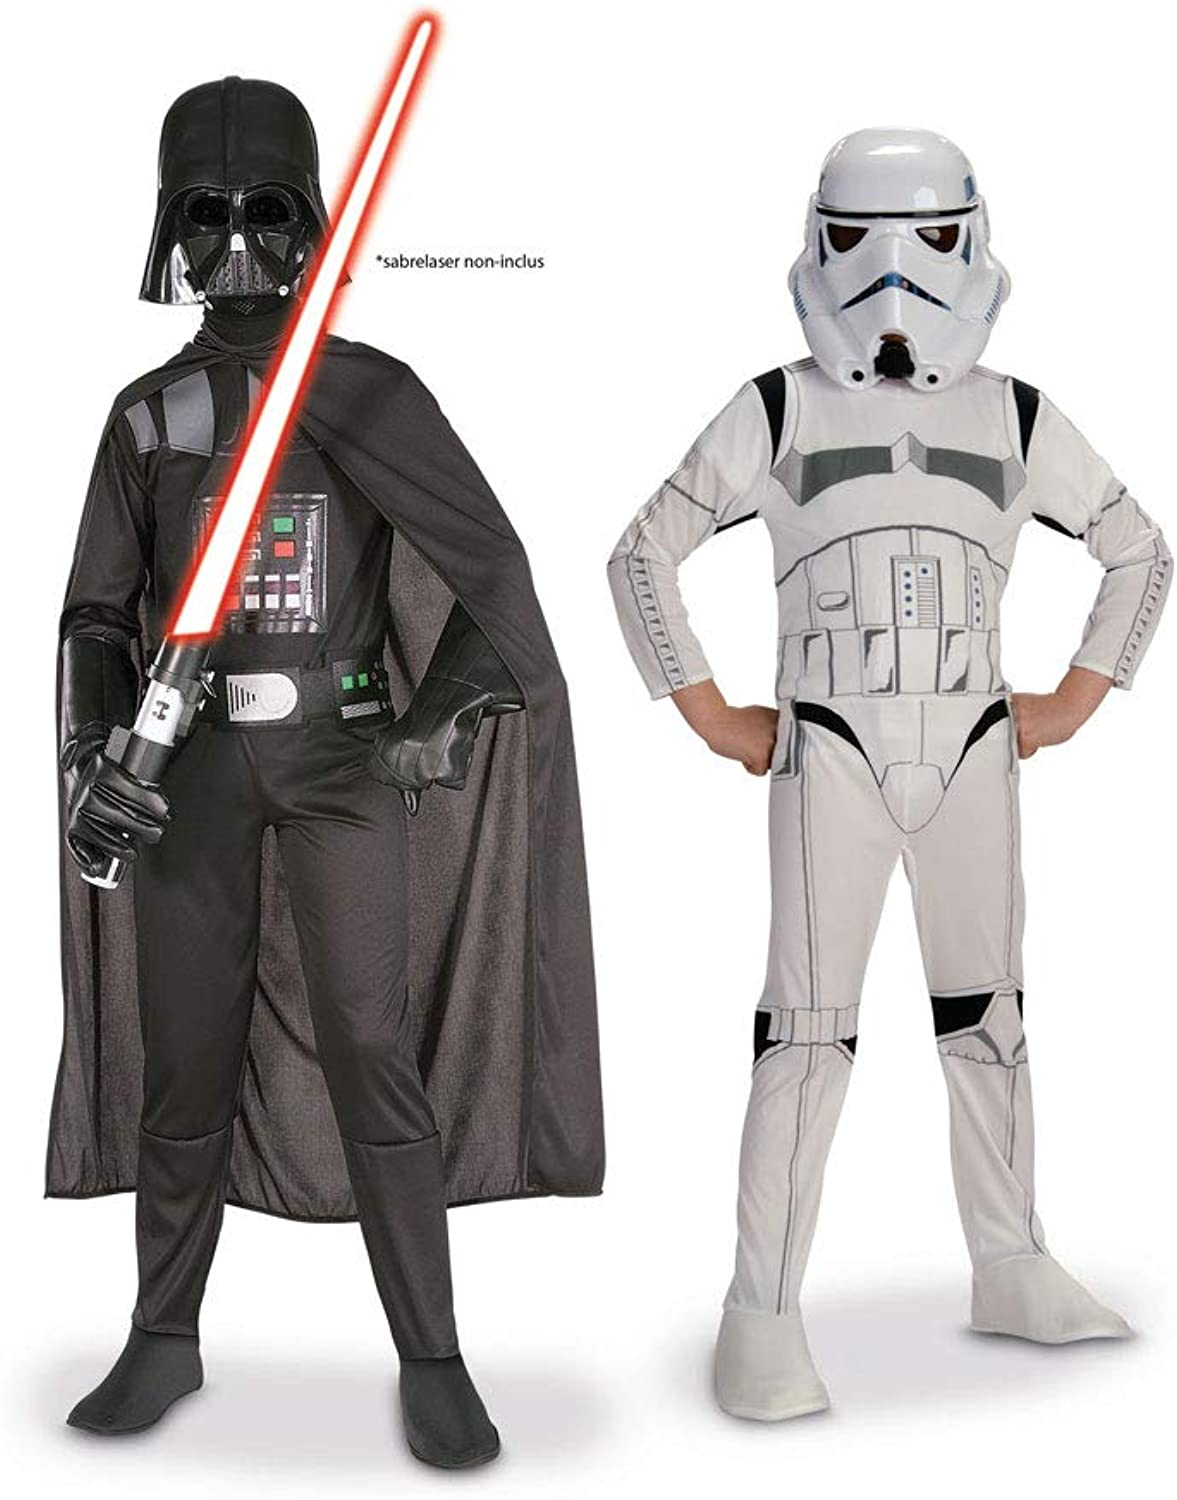 Generique Darth Vader and Stormtrooper Star Wars Couples Costumes for Kids